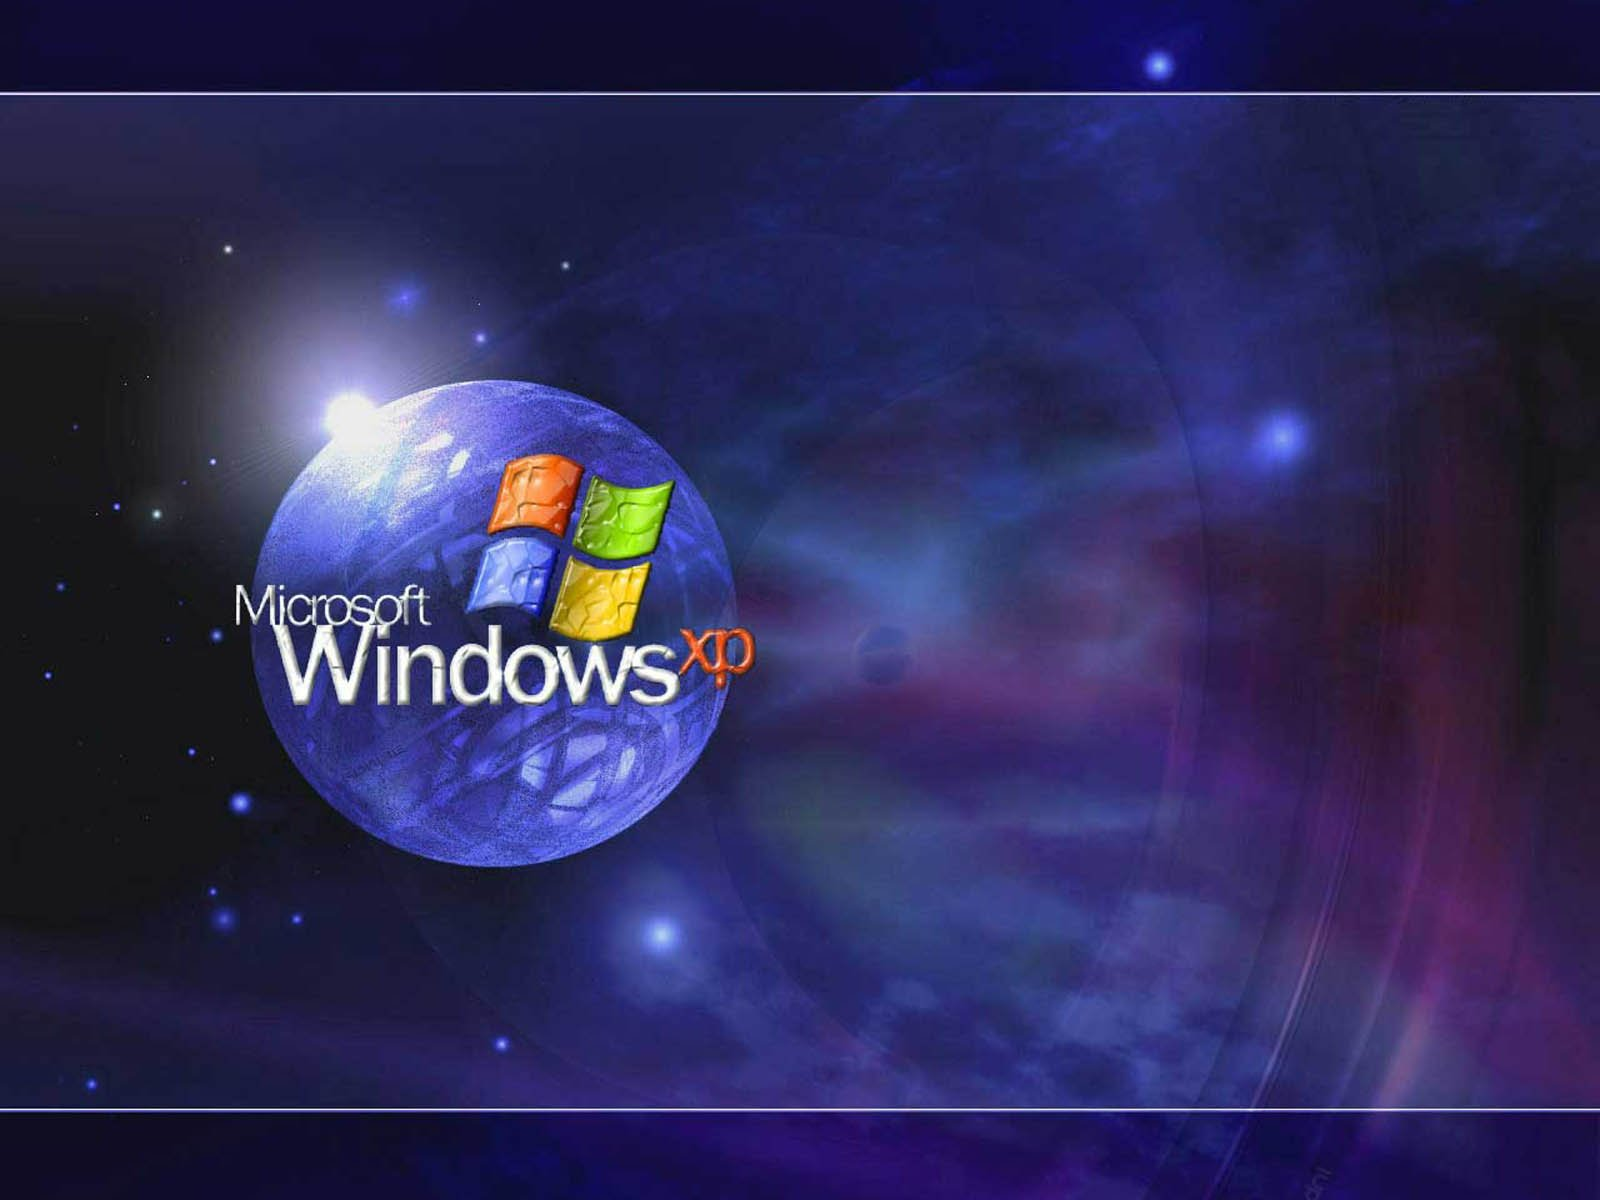 animated wallpapers for windows xp wallpapers in hd comphotodesktop wallpaper animated windows 721